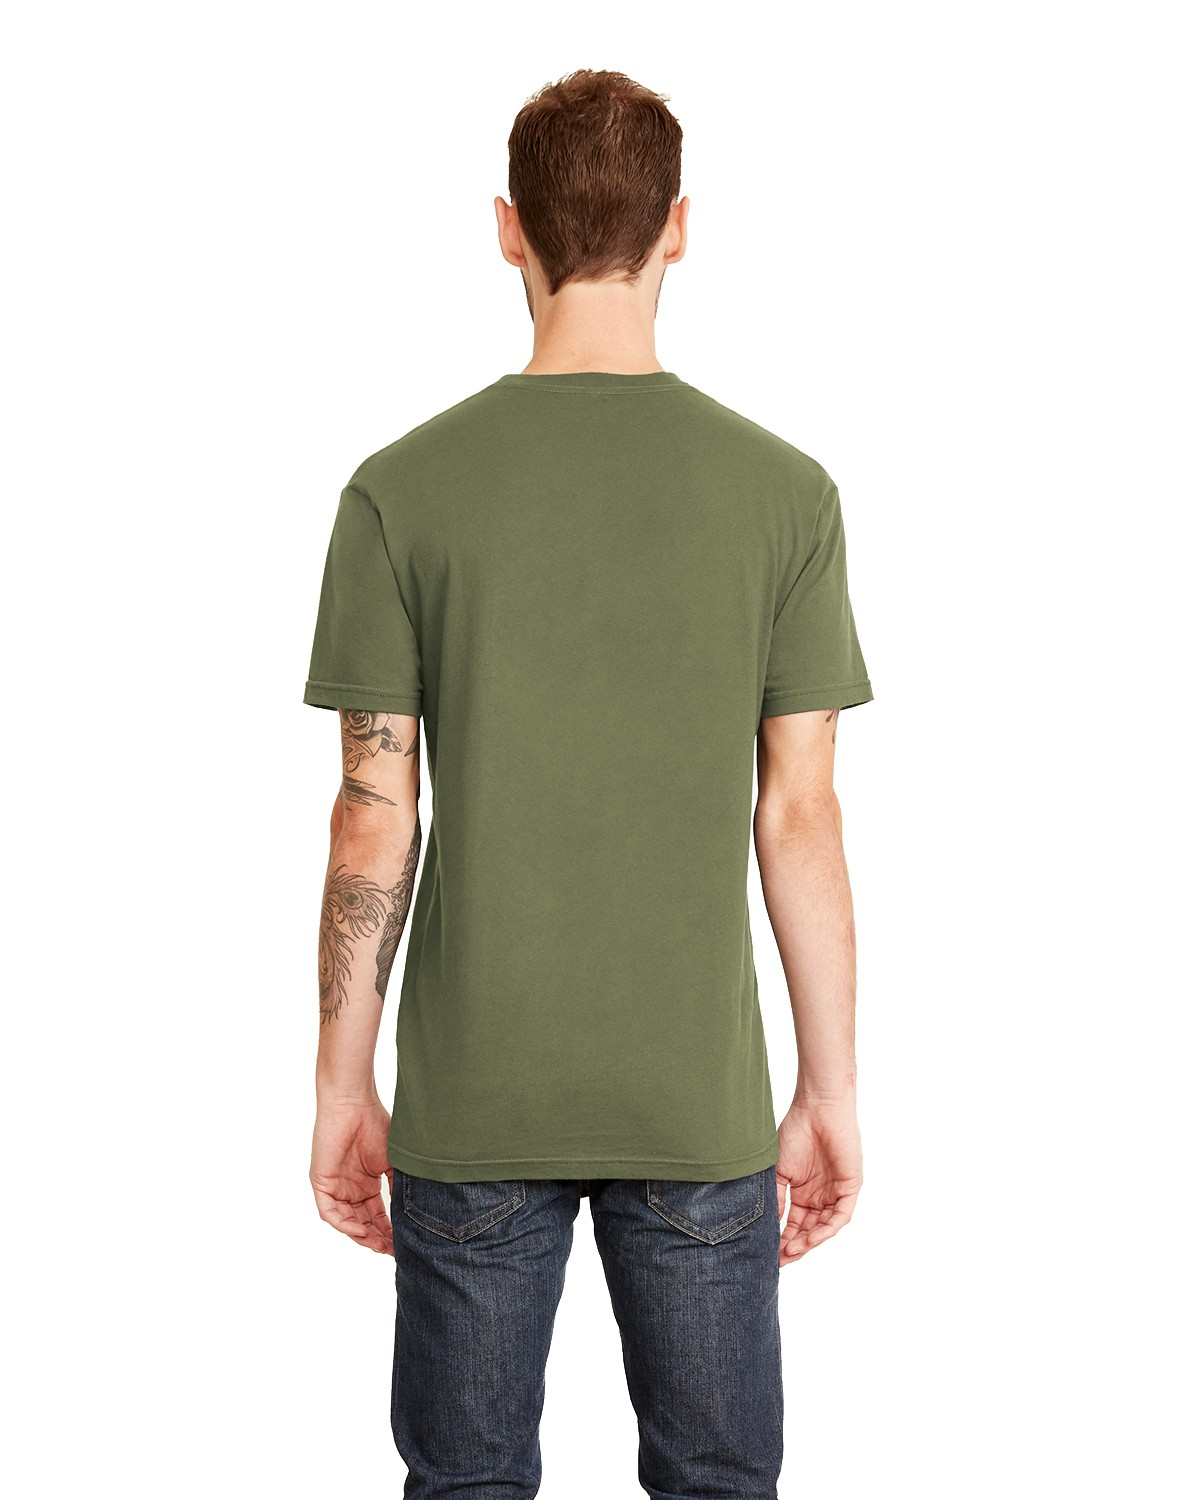 3605 Next Level MILITARY GREEN